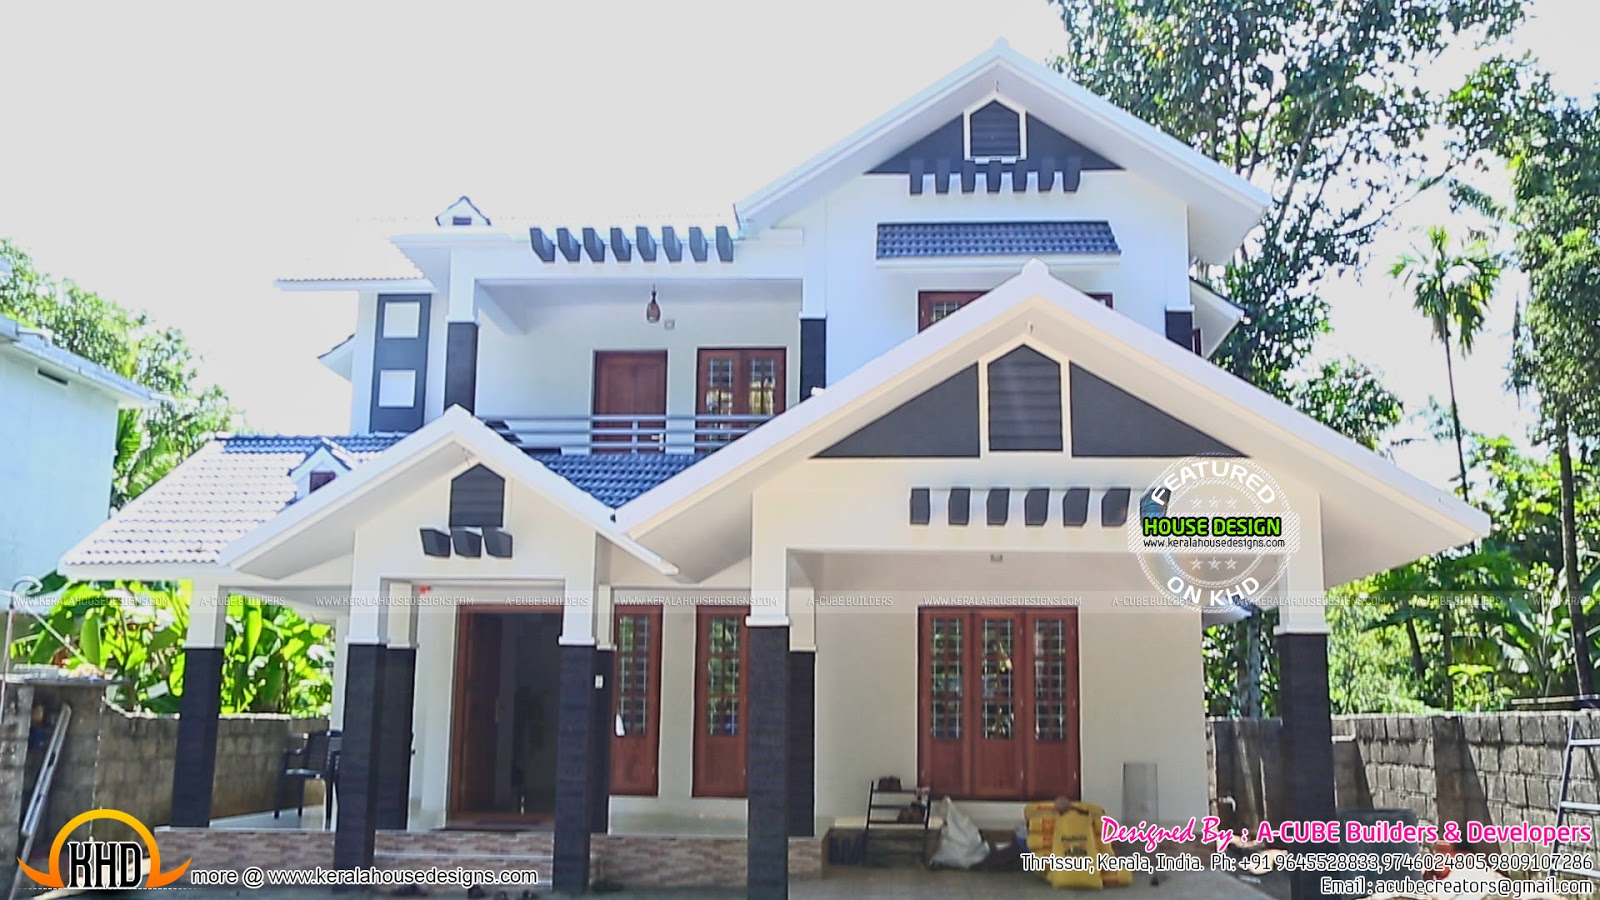 New house plans for 2016 starts here kerala home design for Home designs 2016